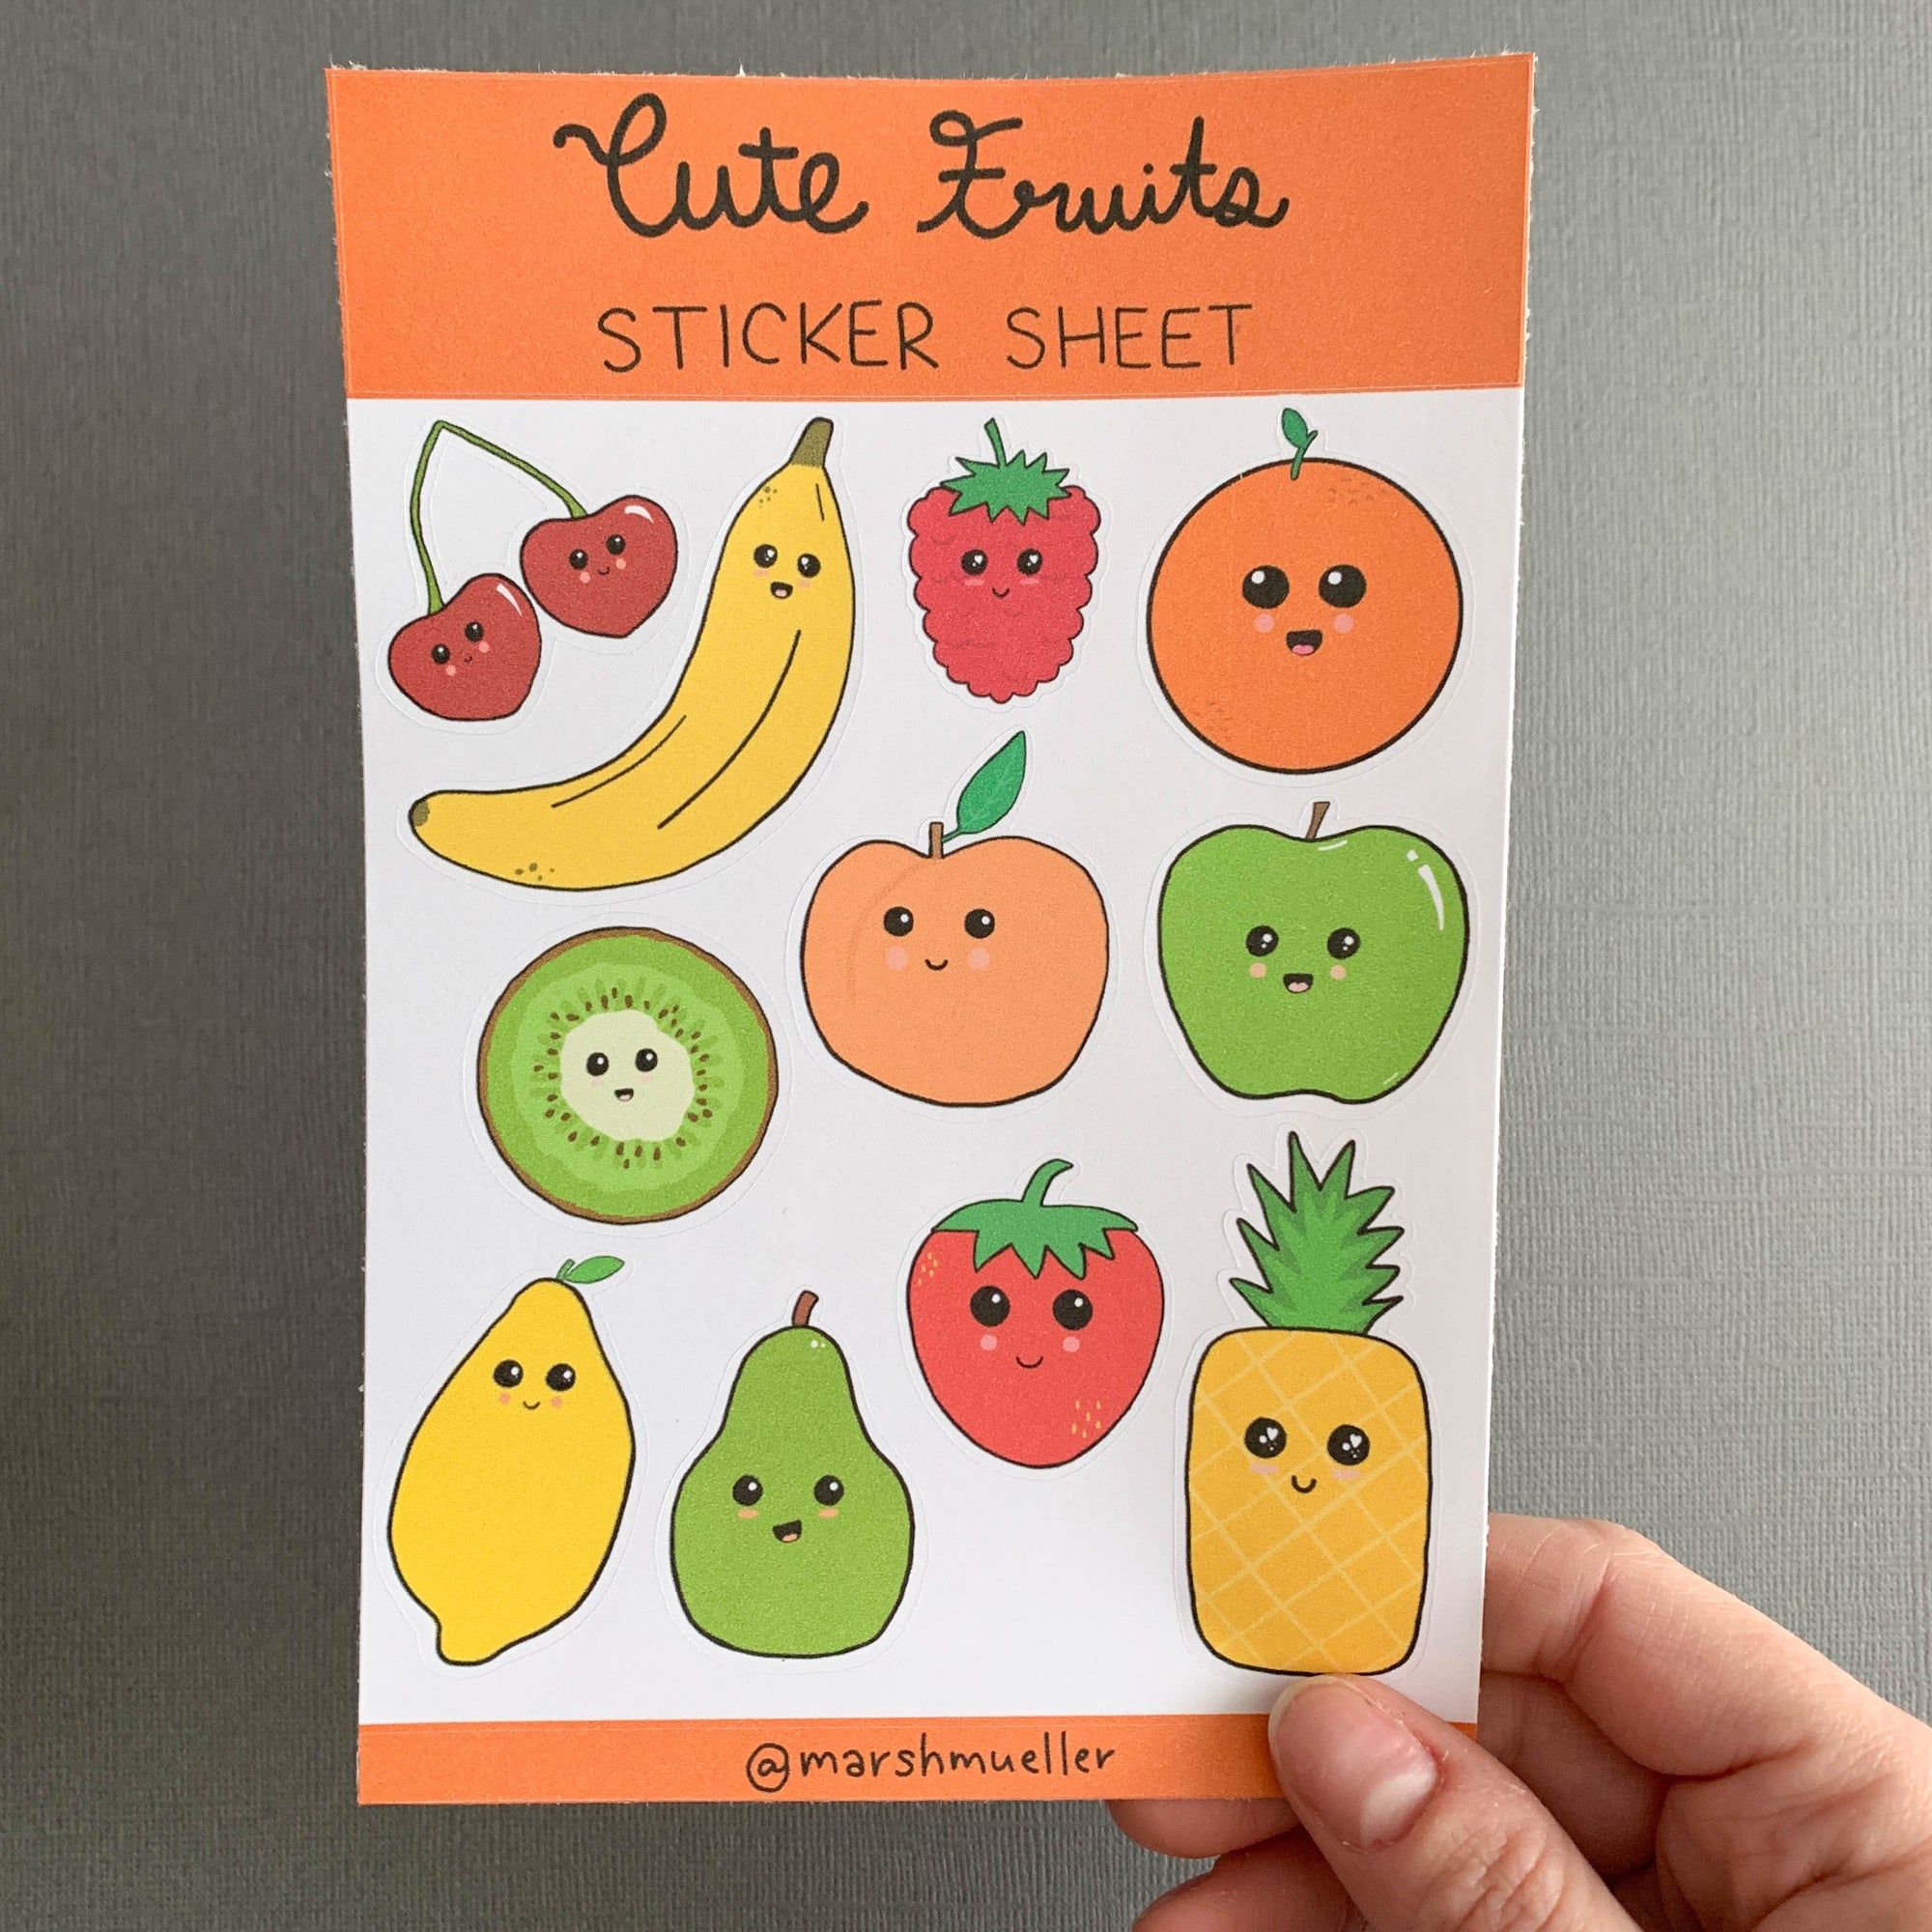 Cute Fruits sticker sheet on a grey background